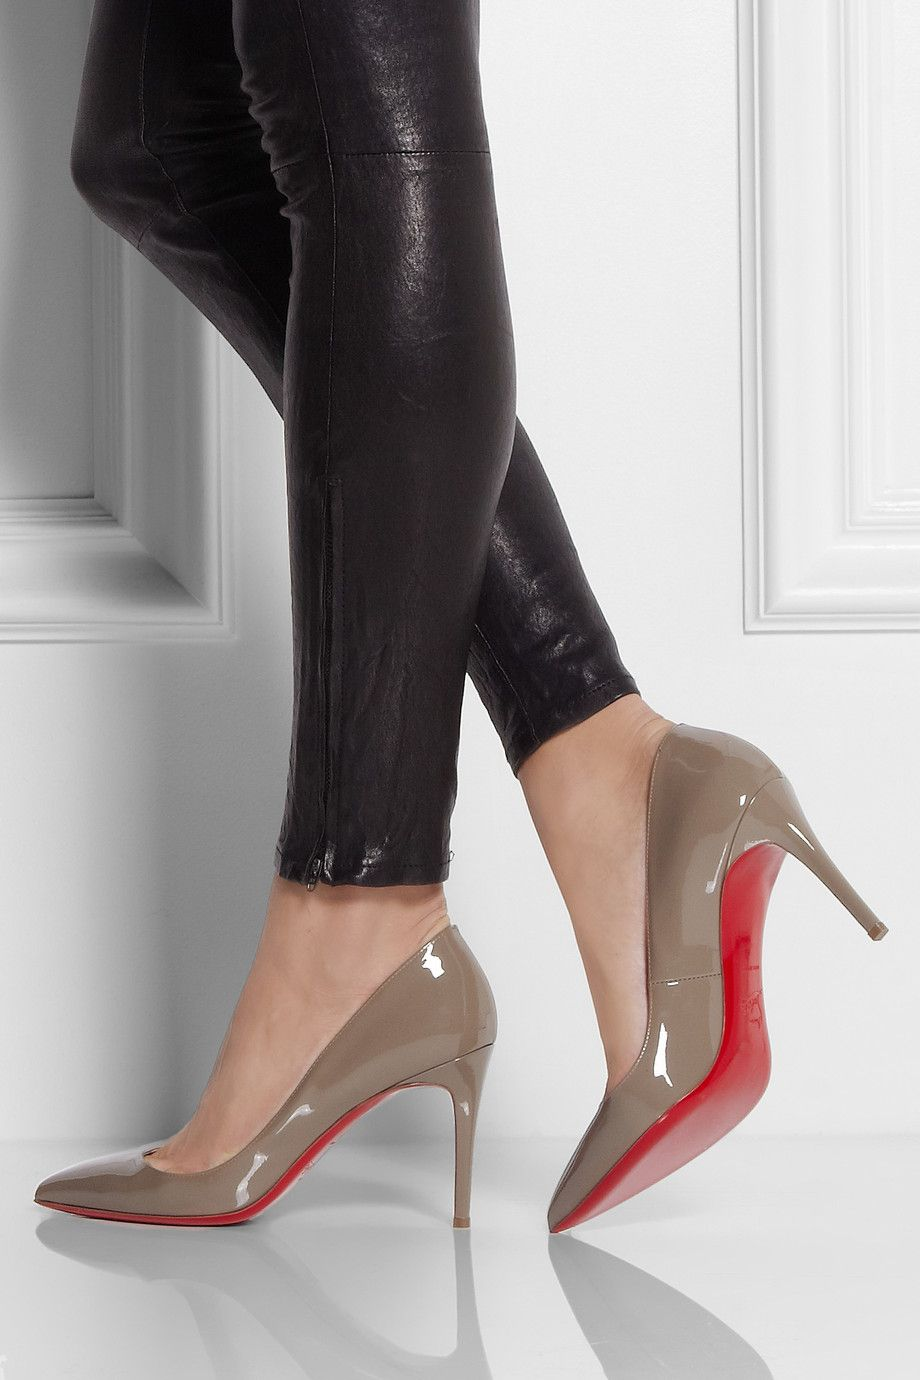 Pigalle 85 black leather pump Christian Louboutin